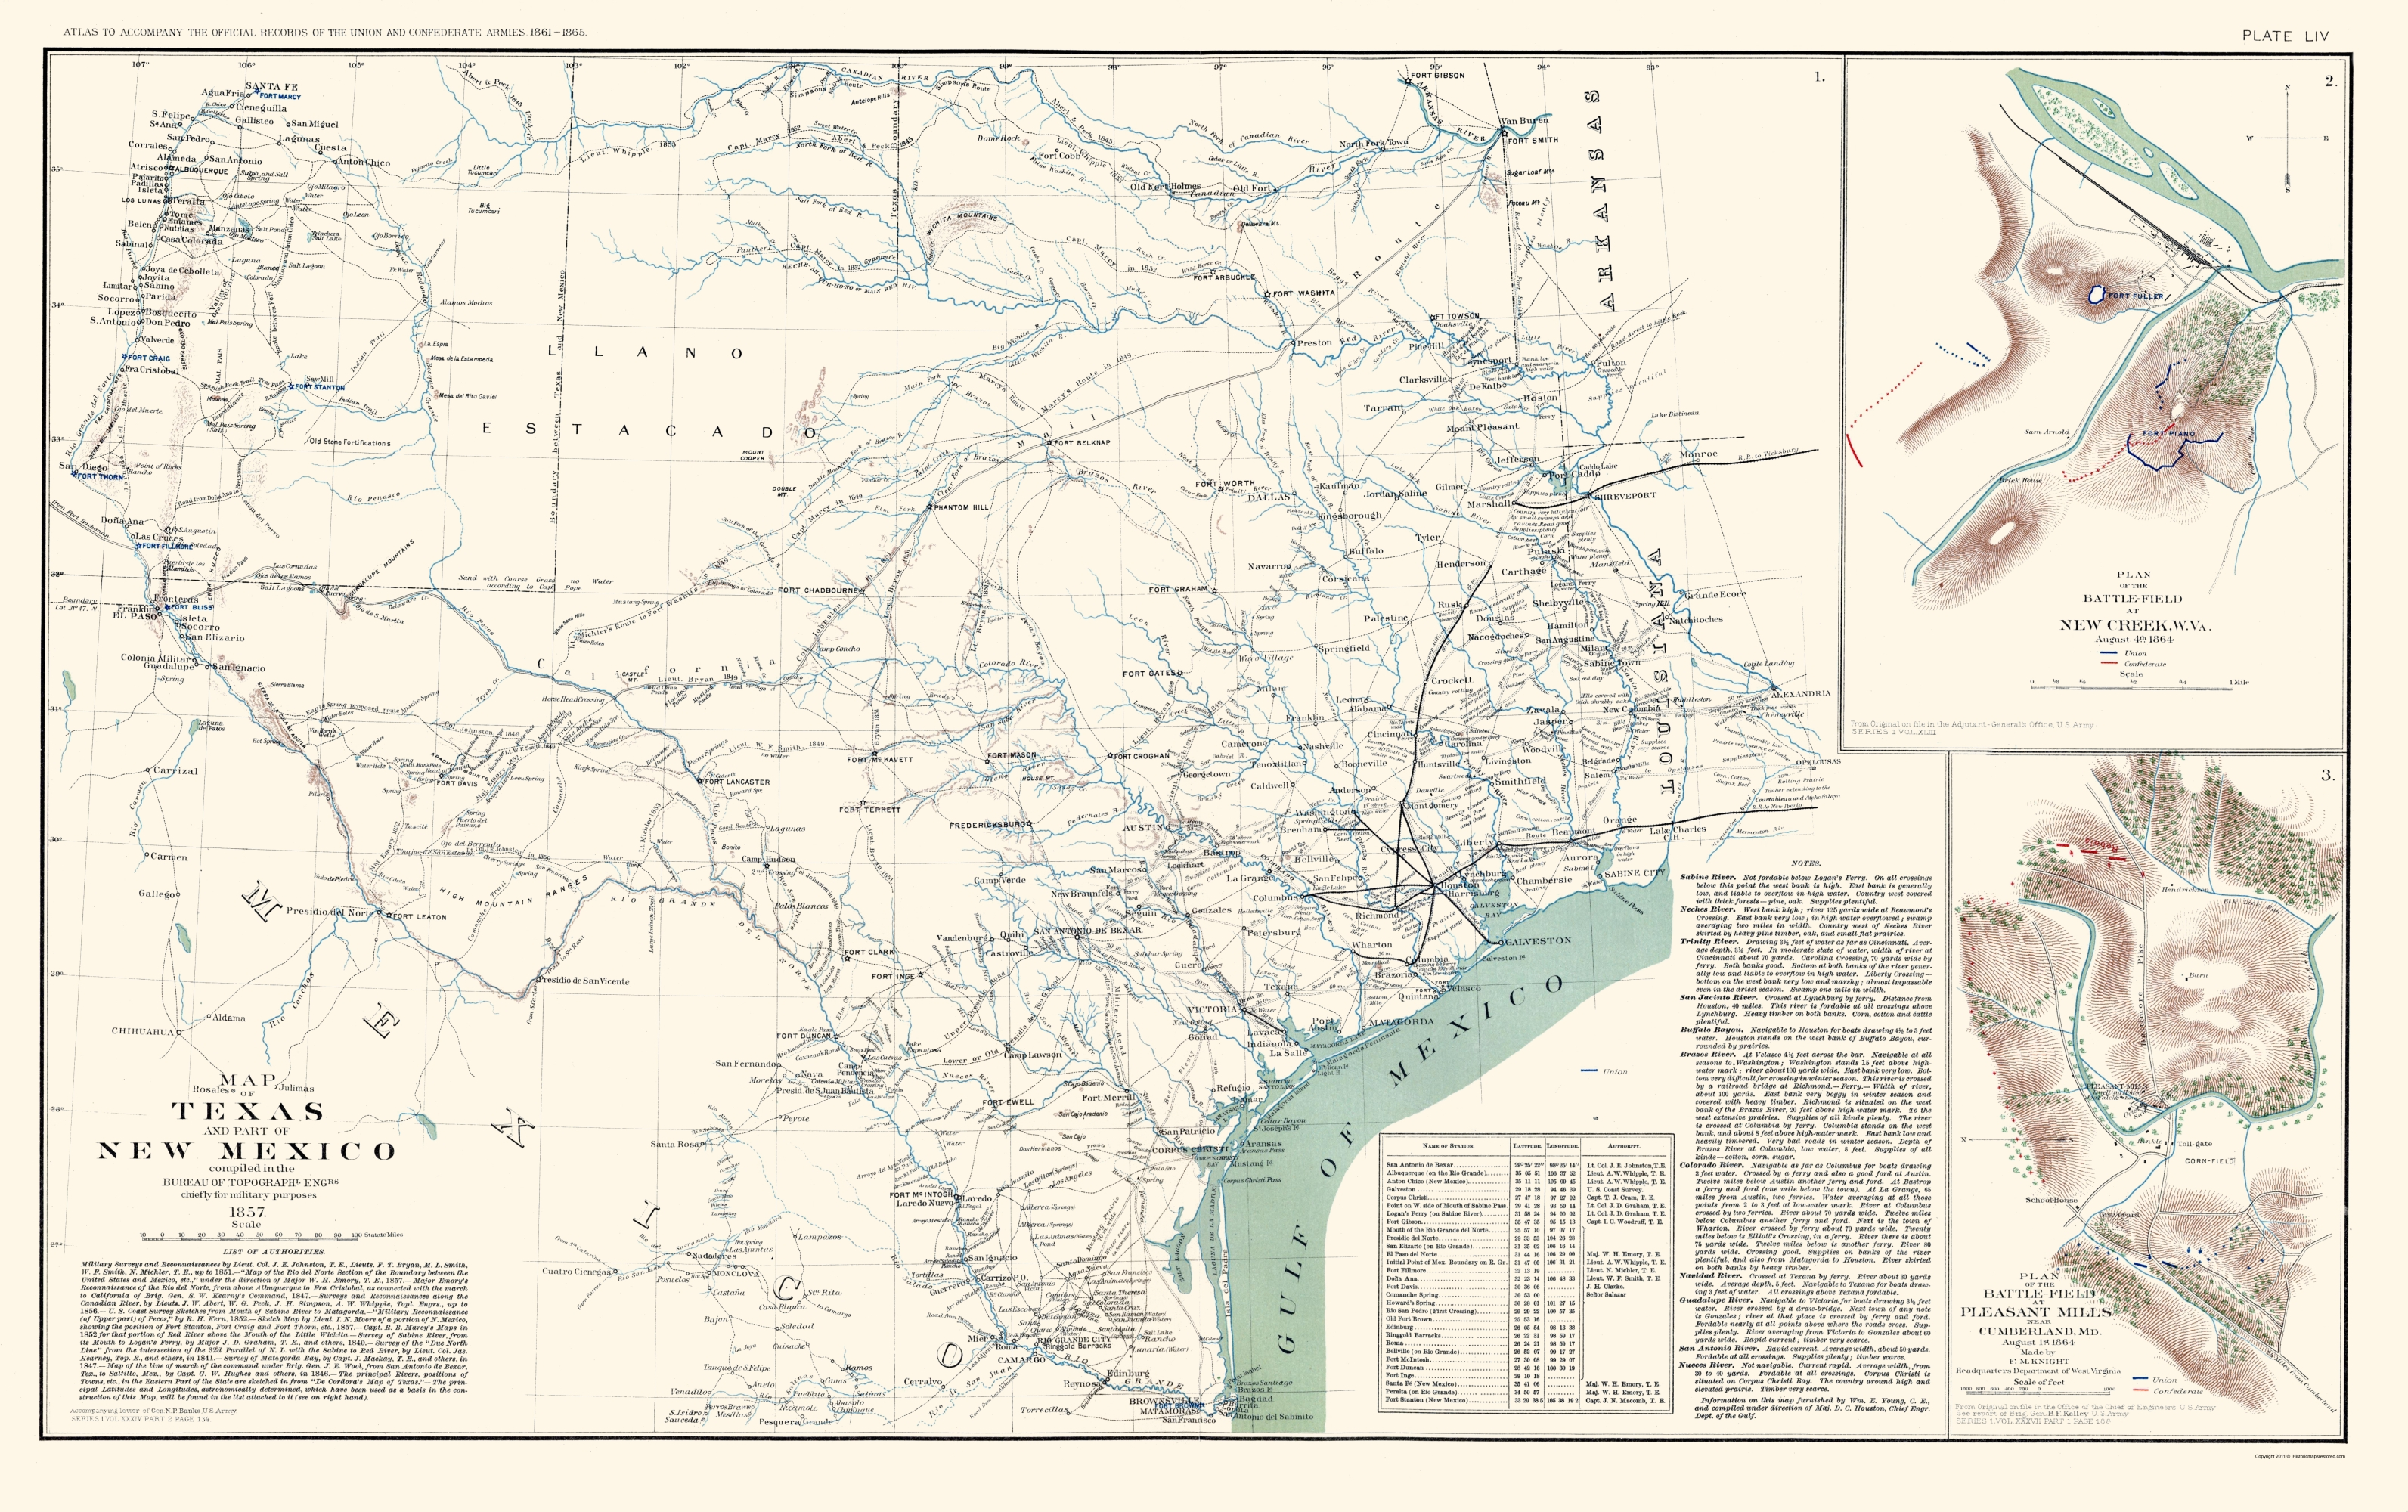 Map Of Texas New Mexico.Old State Map Texas New Mexico Us War Dept 1857 23 X 36 63